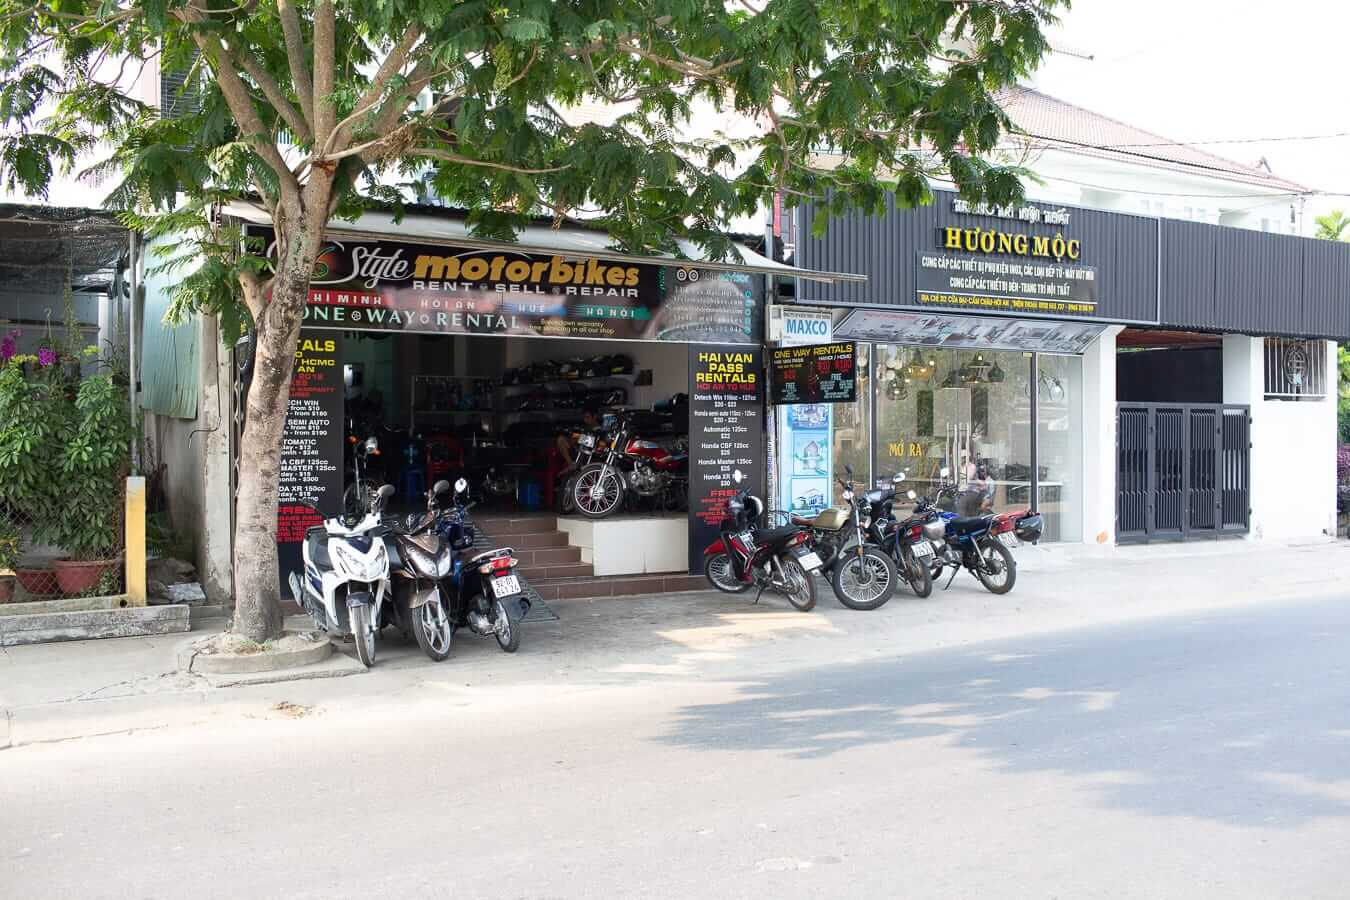 Style Motorbikes Hoi An shop: Motorbike Rental Shops in Hoi An